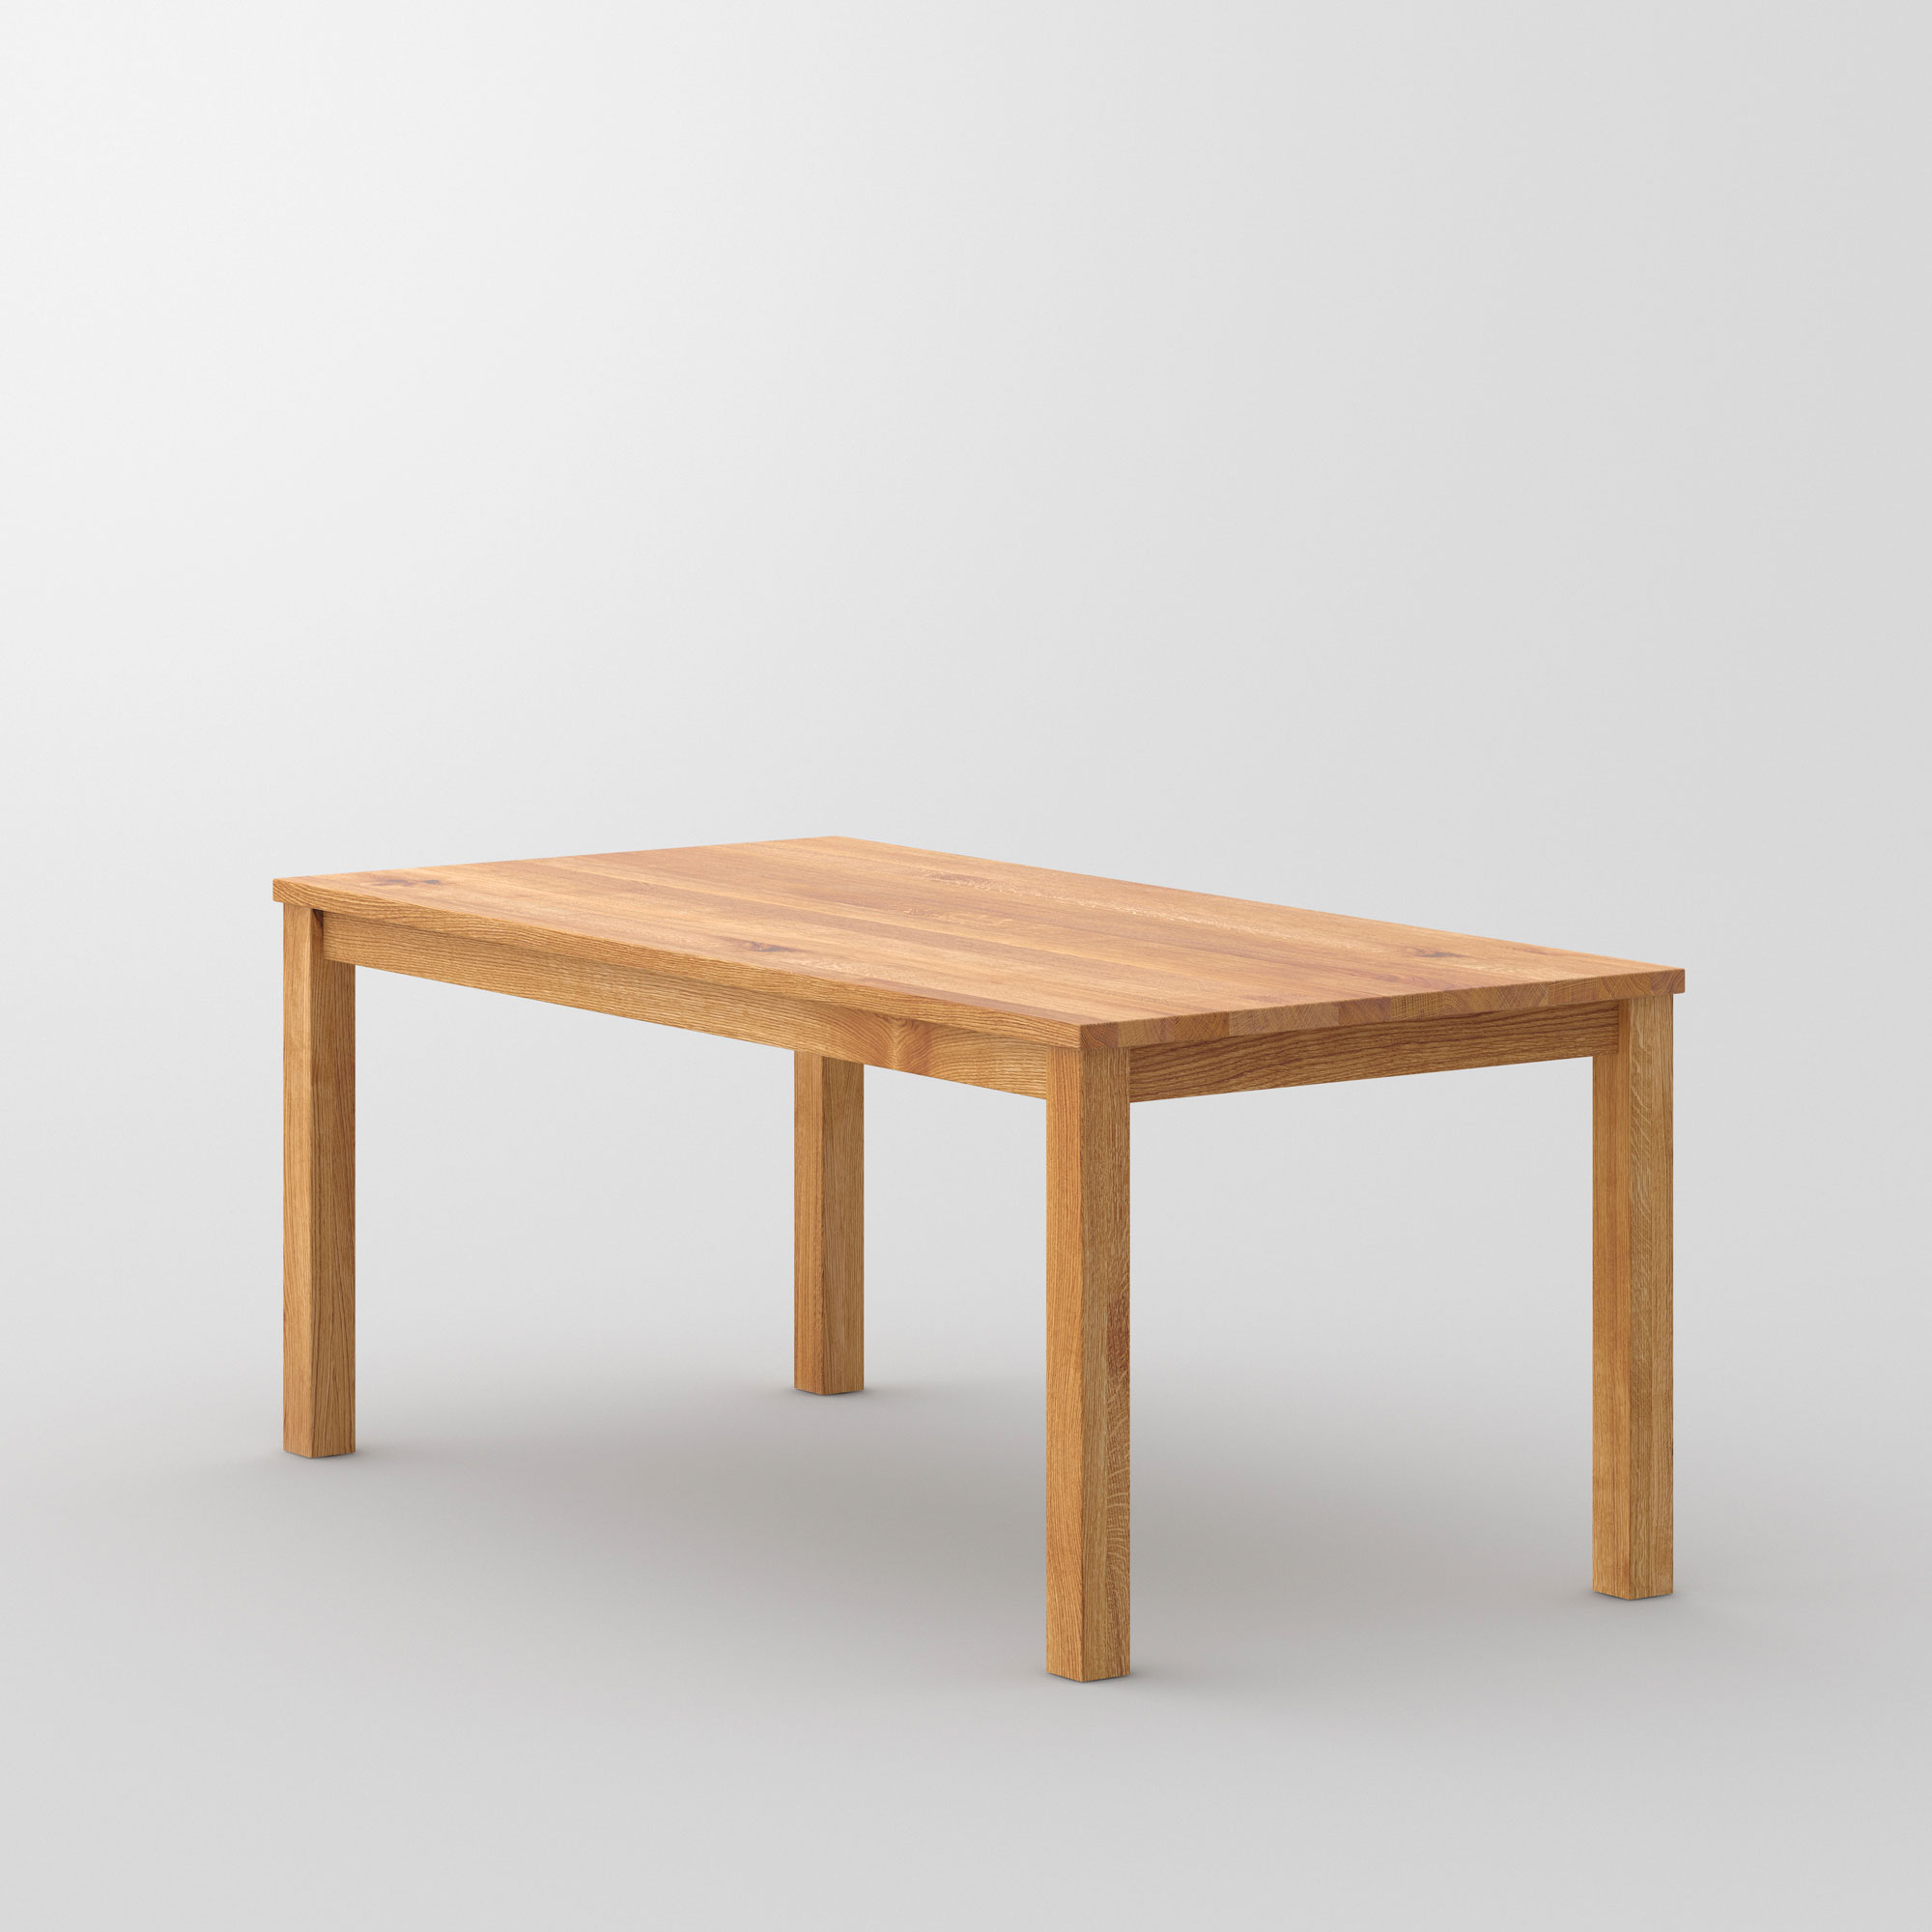 Custom made solid wood table forte vitamin design for Table 180 x 85